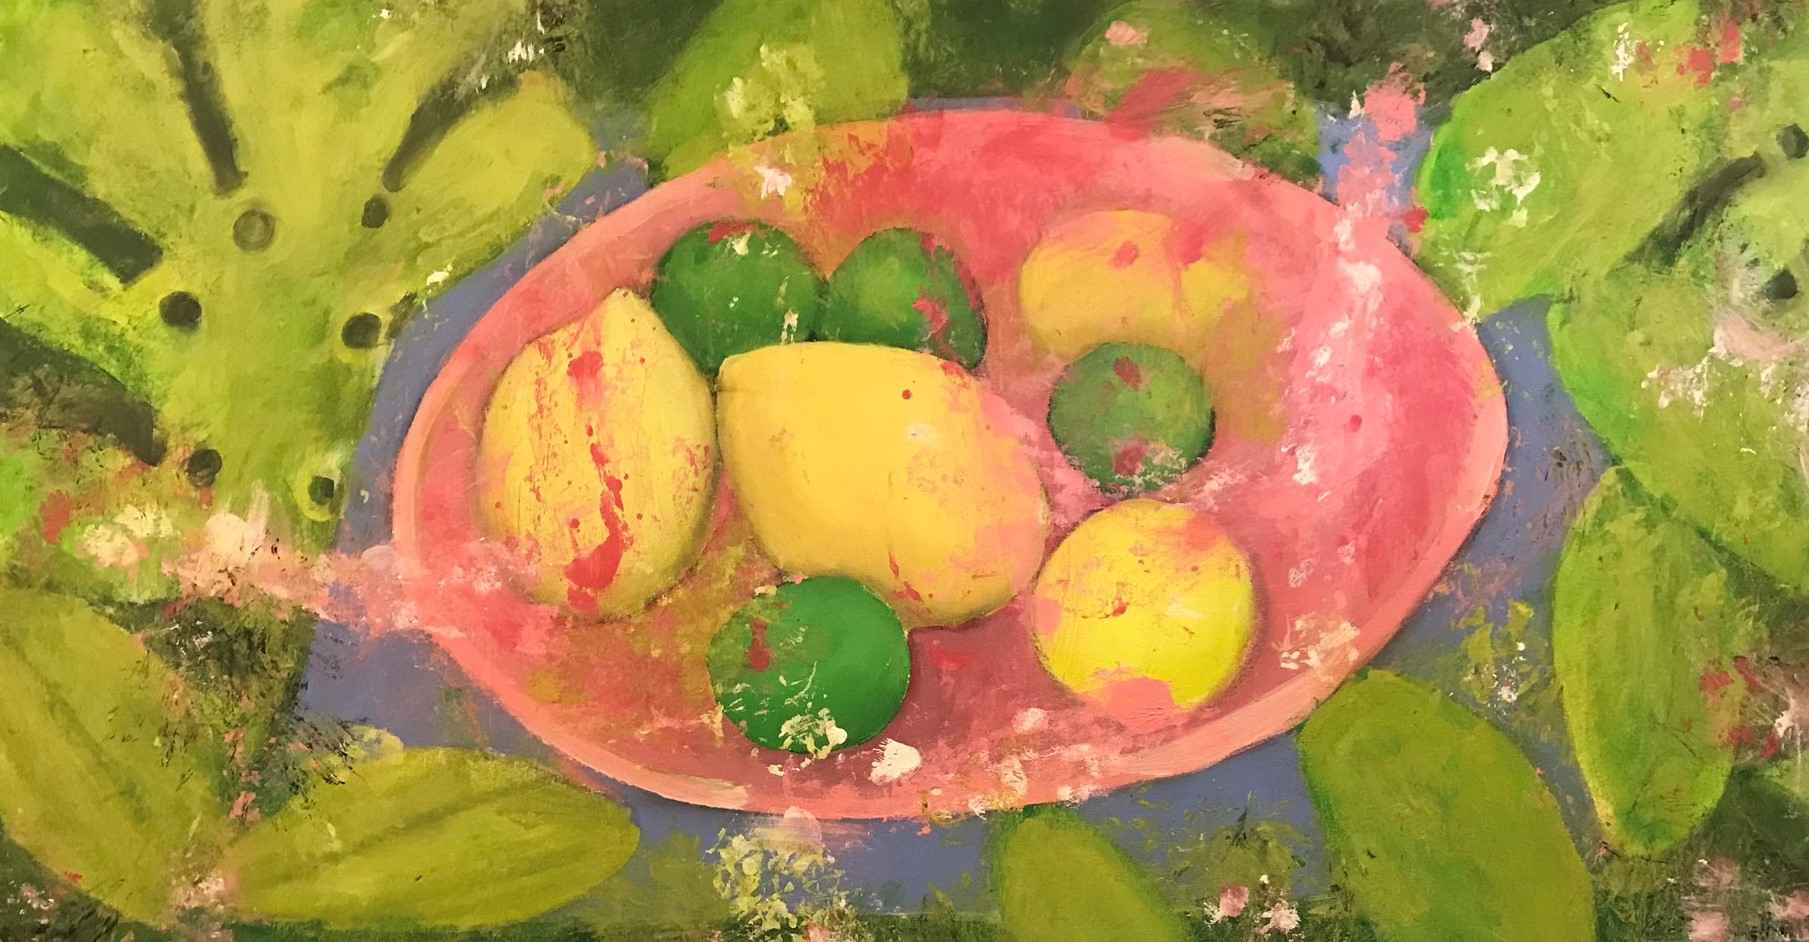 LEMON LIME SUMMER by KAREN OBRIEN